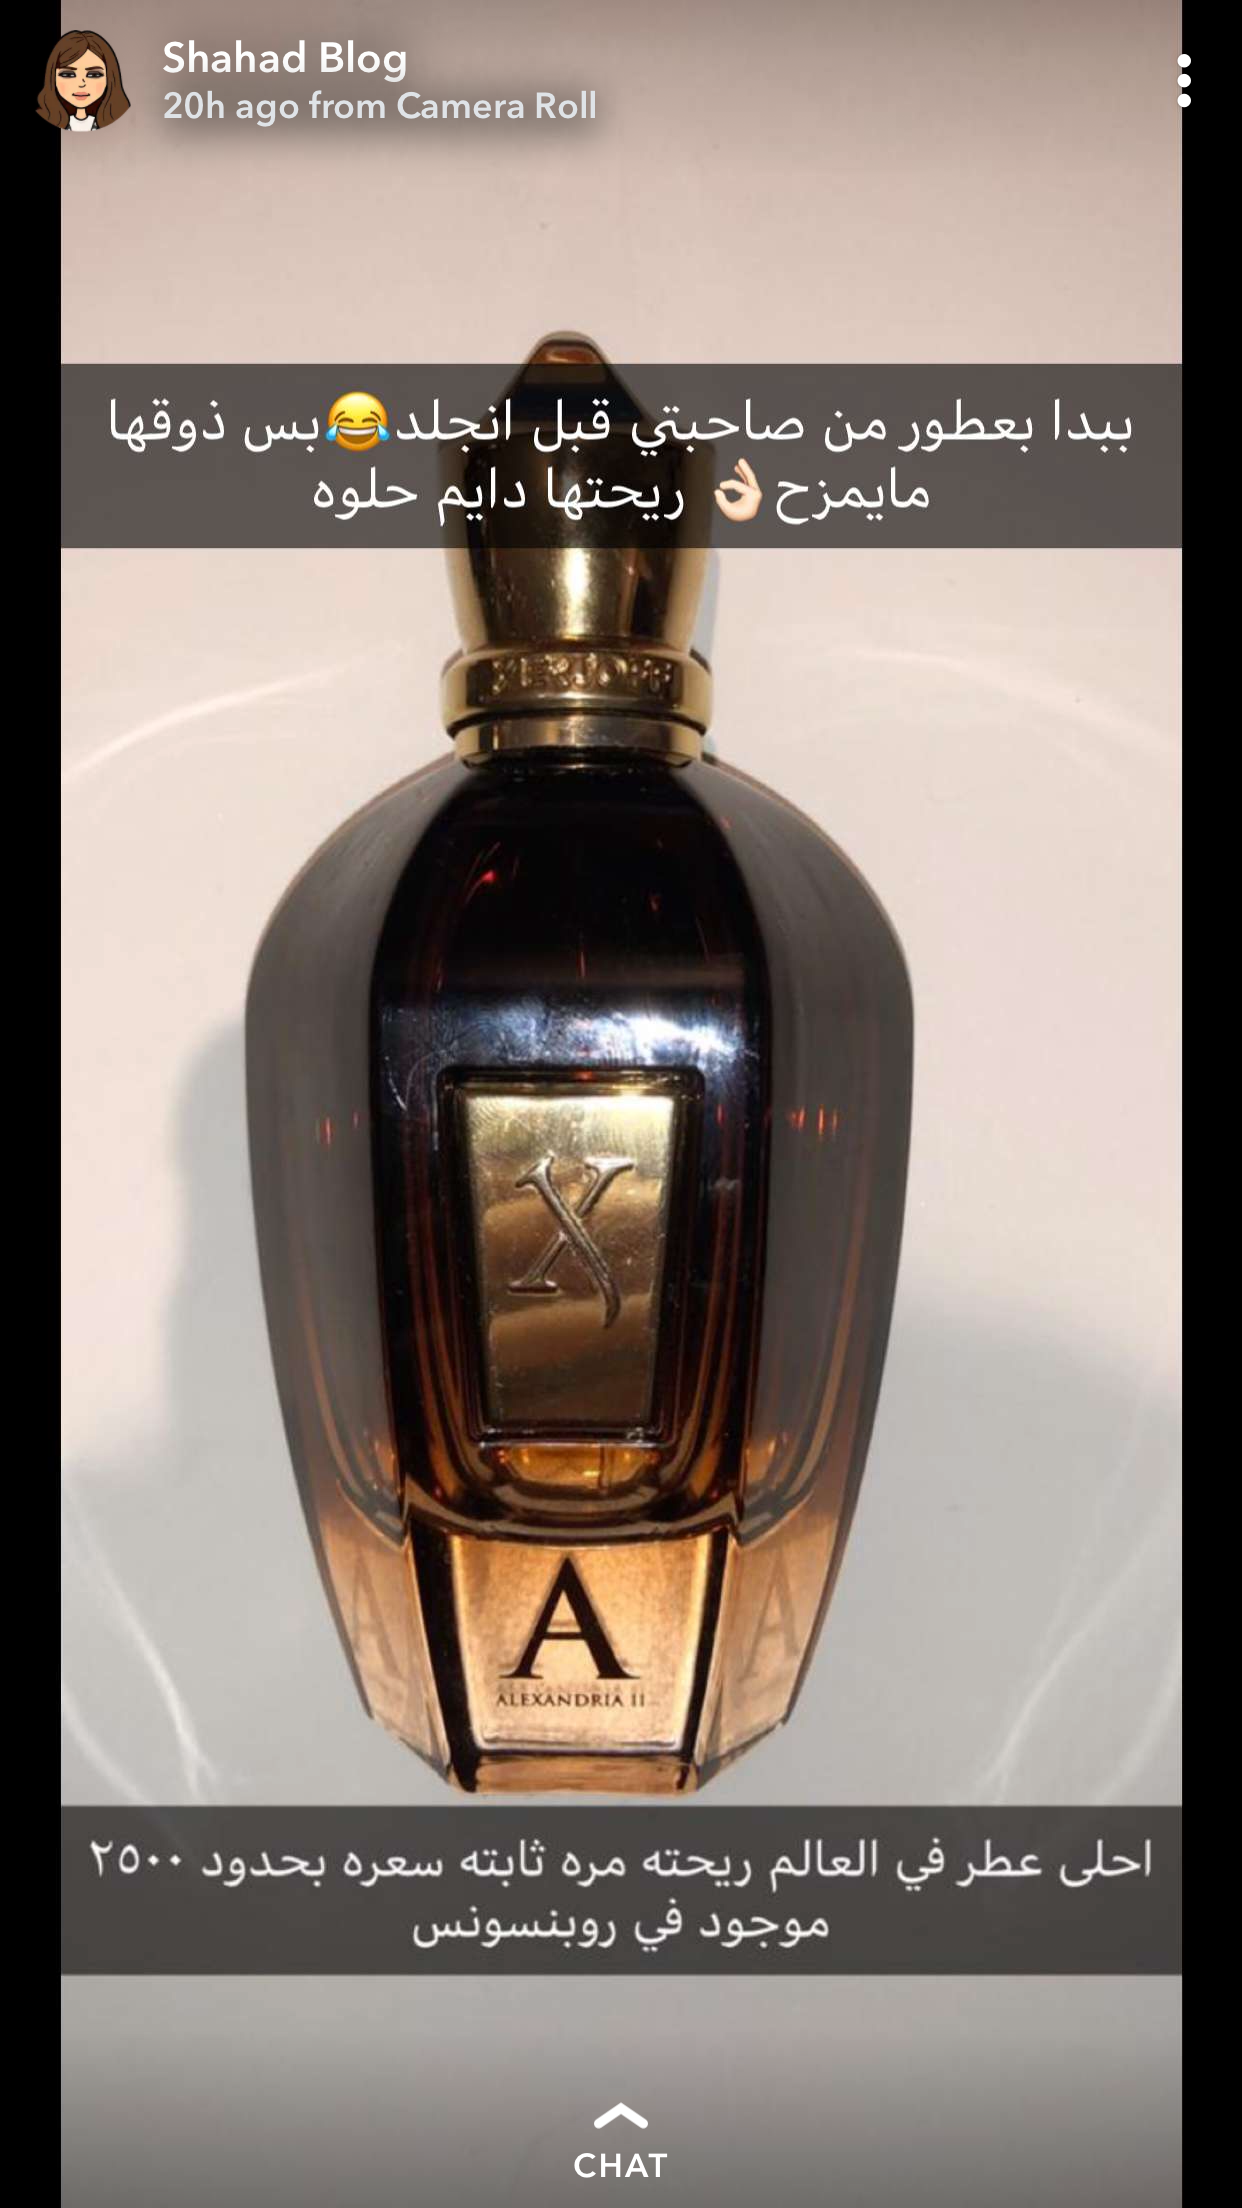 Pin By Met Ho On مشتريات Perfume Scents Lovely Perfume Perfume